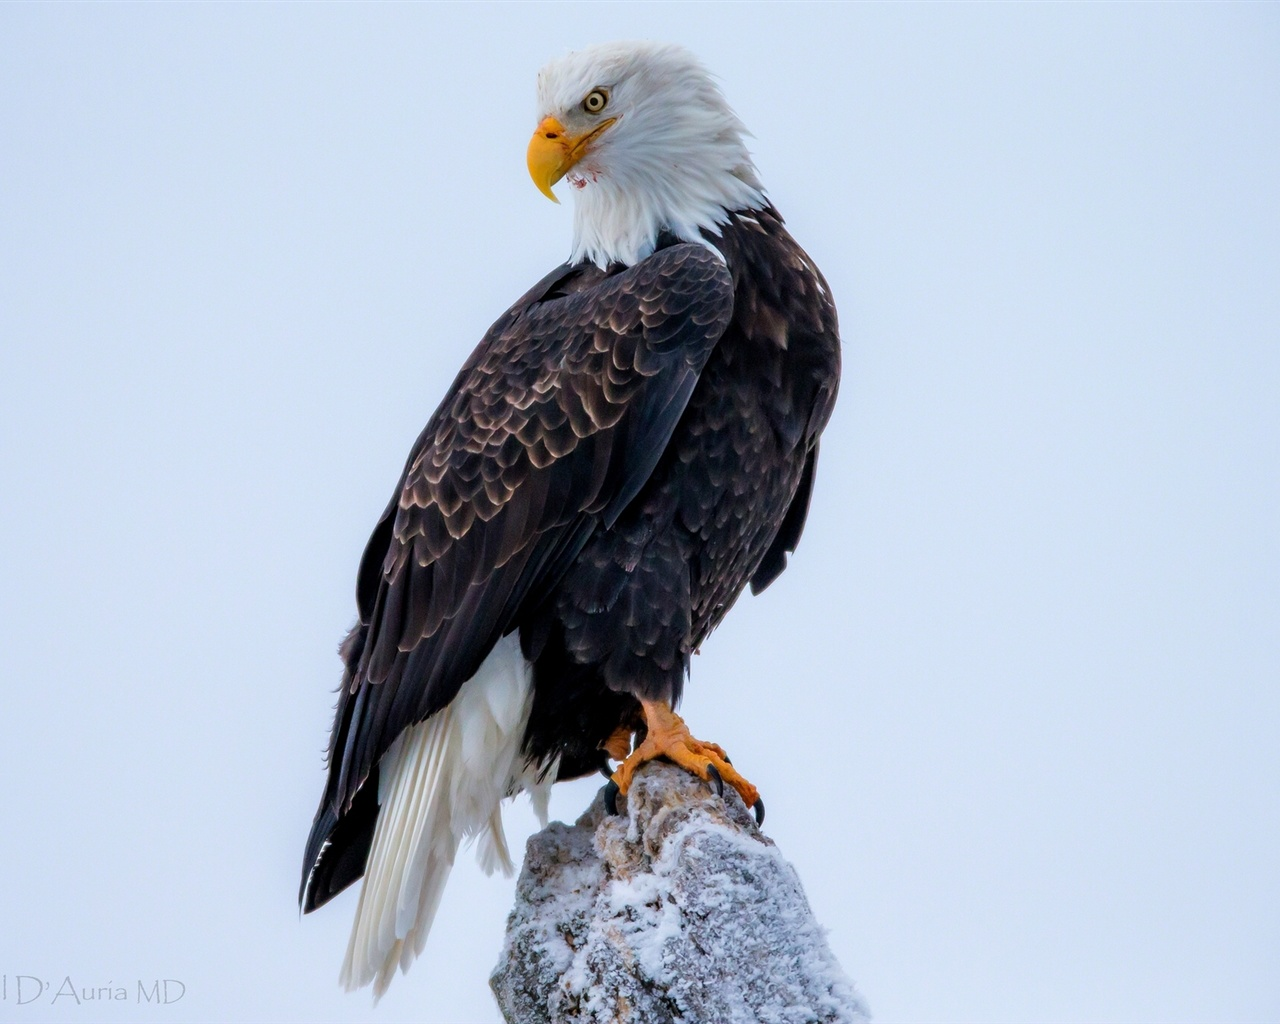 eagle 1280x1024 wallpaper - photo #1